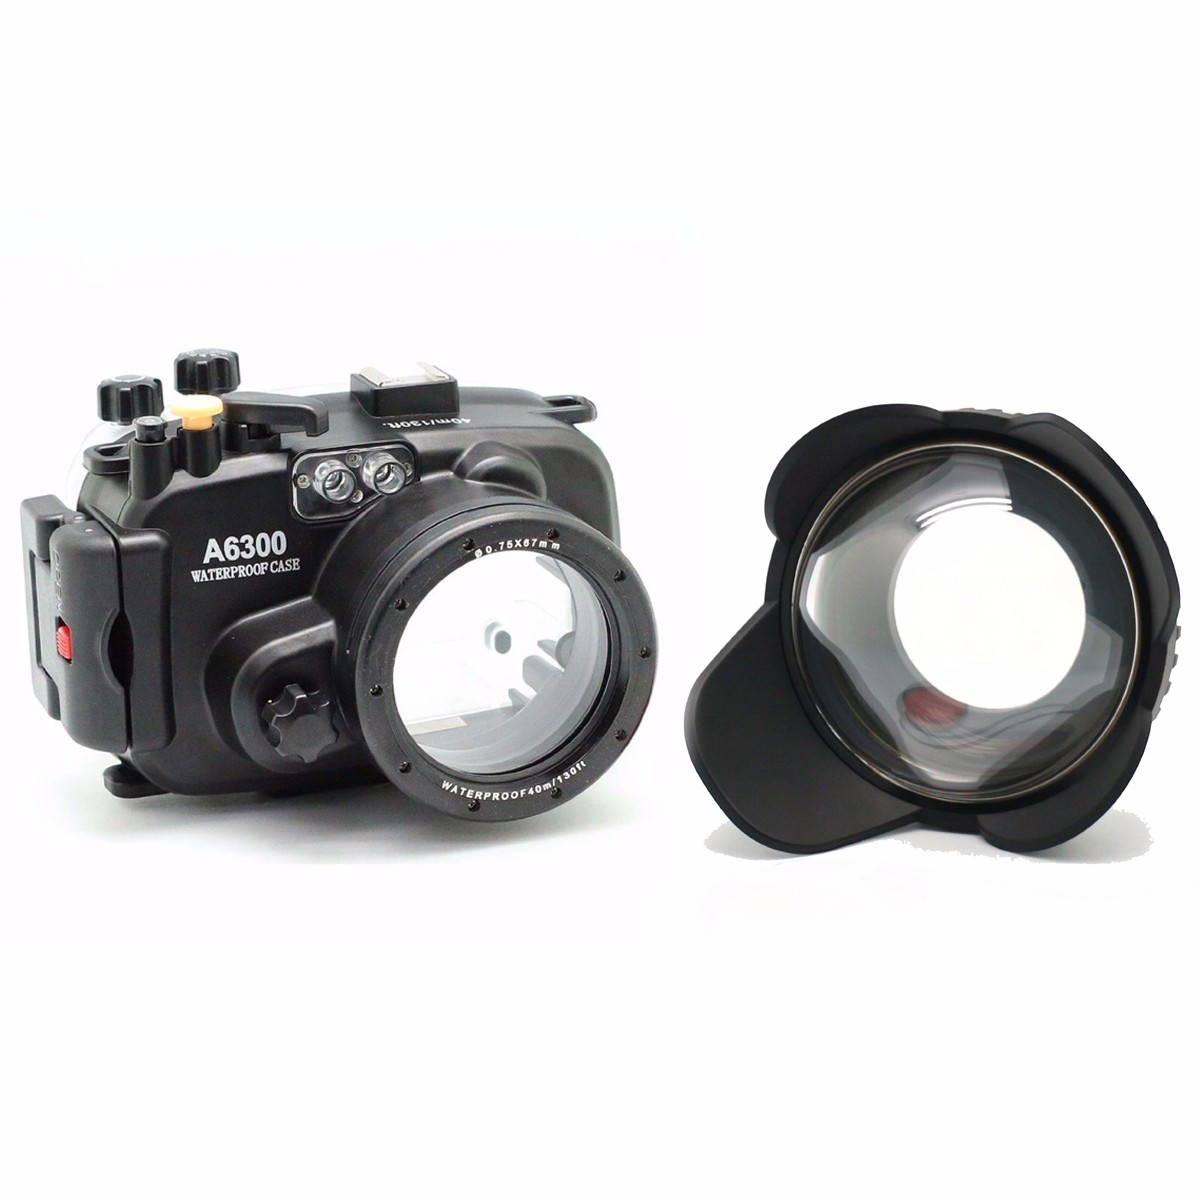 Meikon 130ft Underwater Camera Housing Case for sony A6300 Camera + Wide Angle Dome Port lens + 67mm red filter meikon бокс meikon для sony rx100 iii